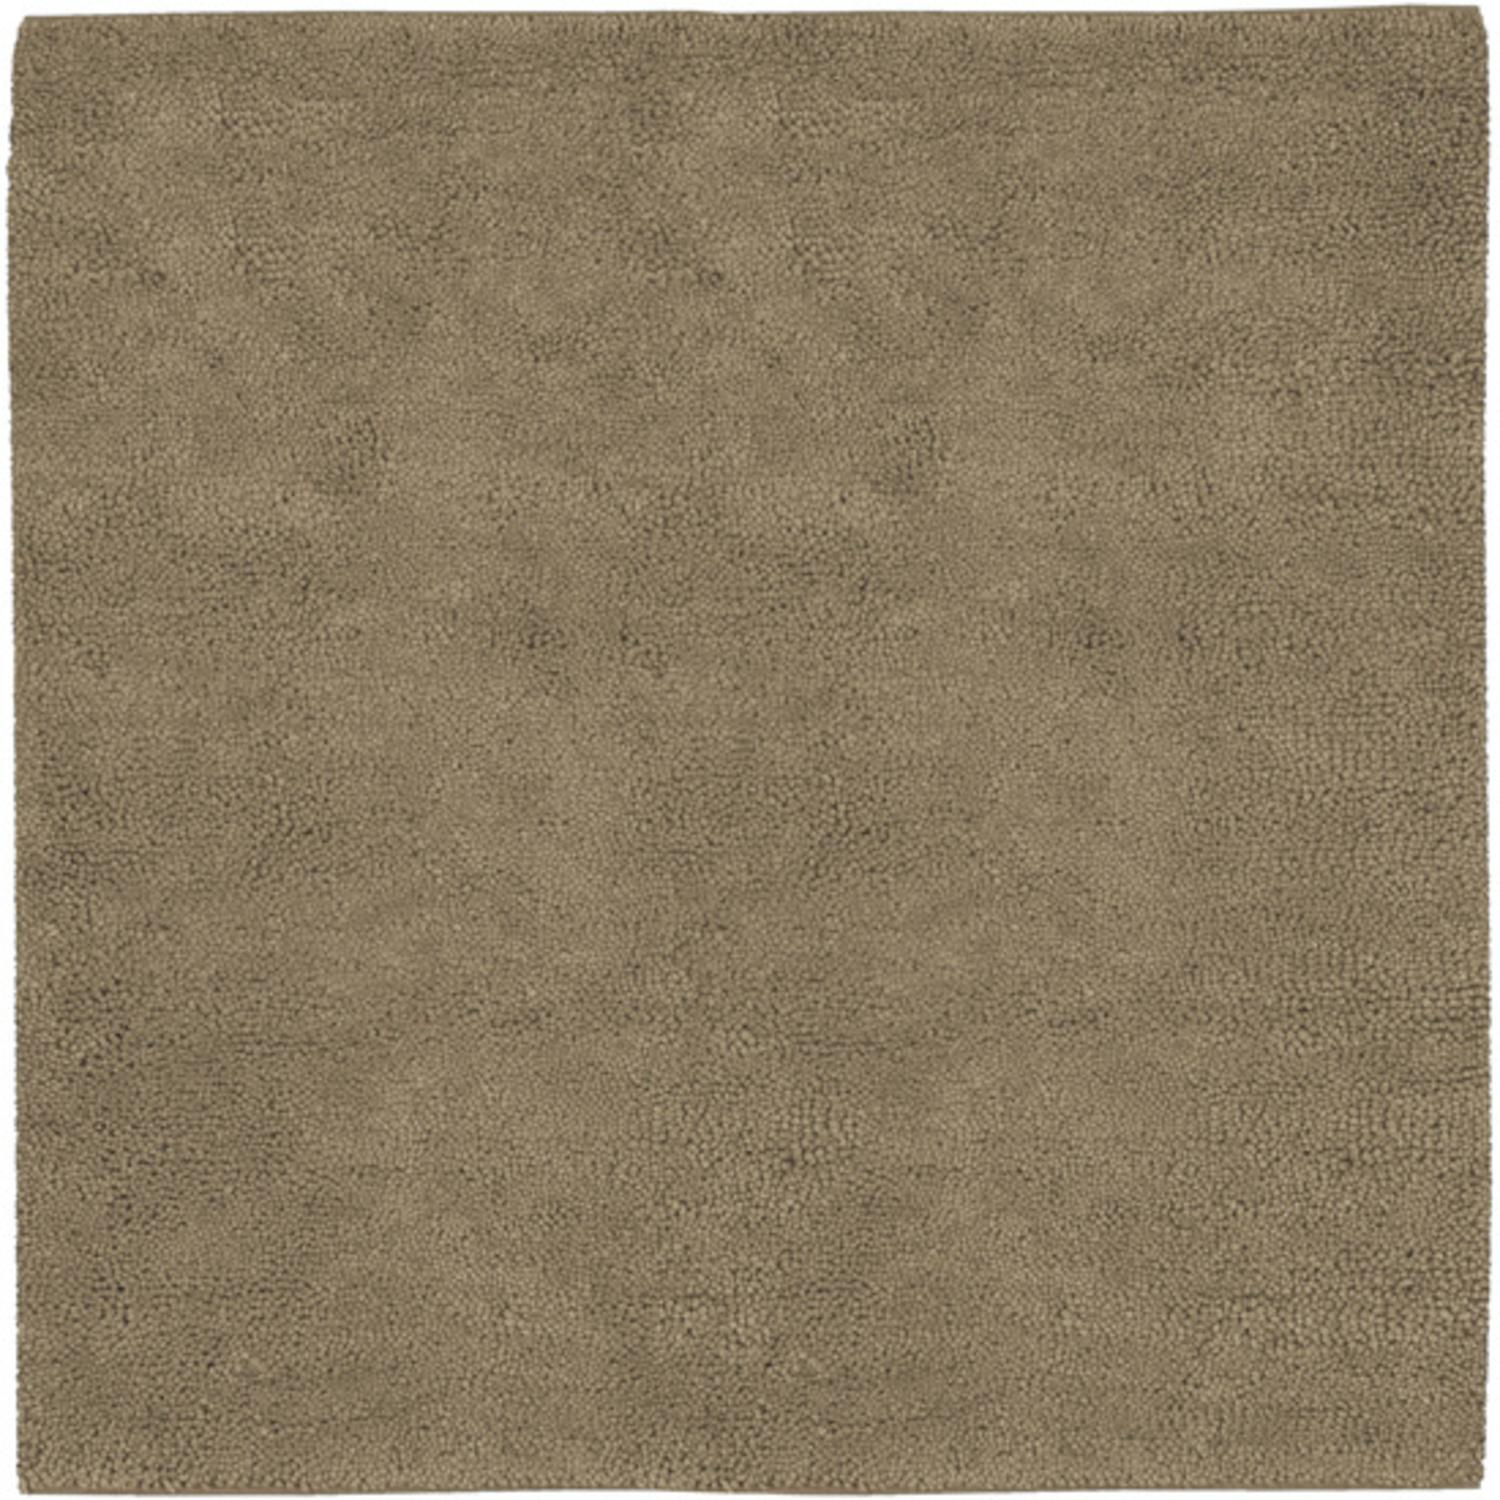 8' Solid Sandy Taupe Hand Woven Square New Zealand Wool Shag Area Throw Rug